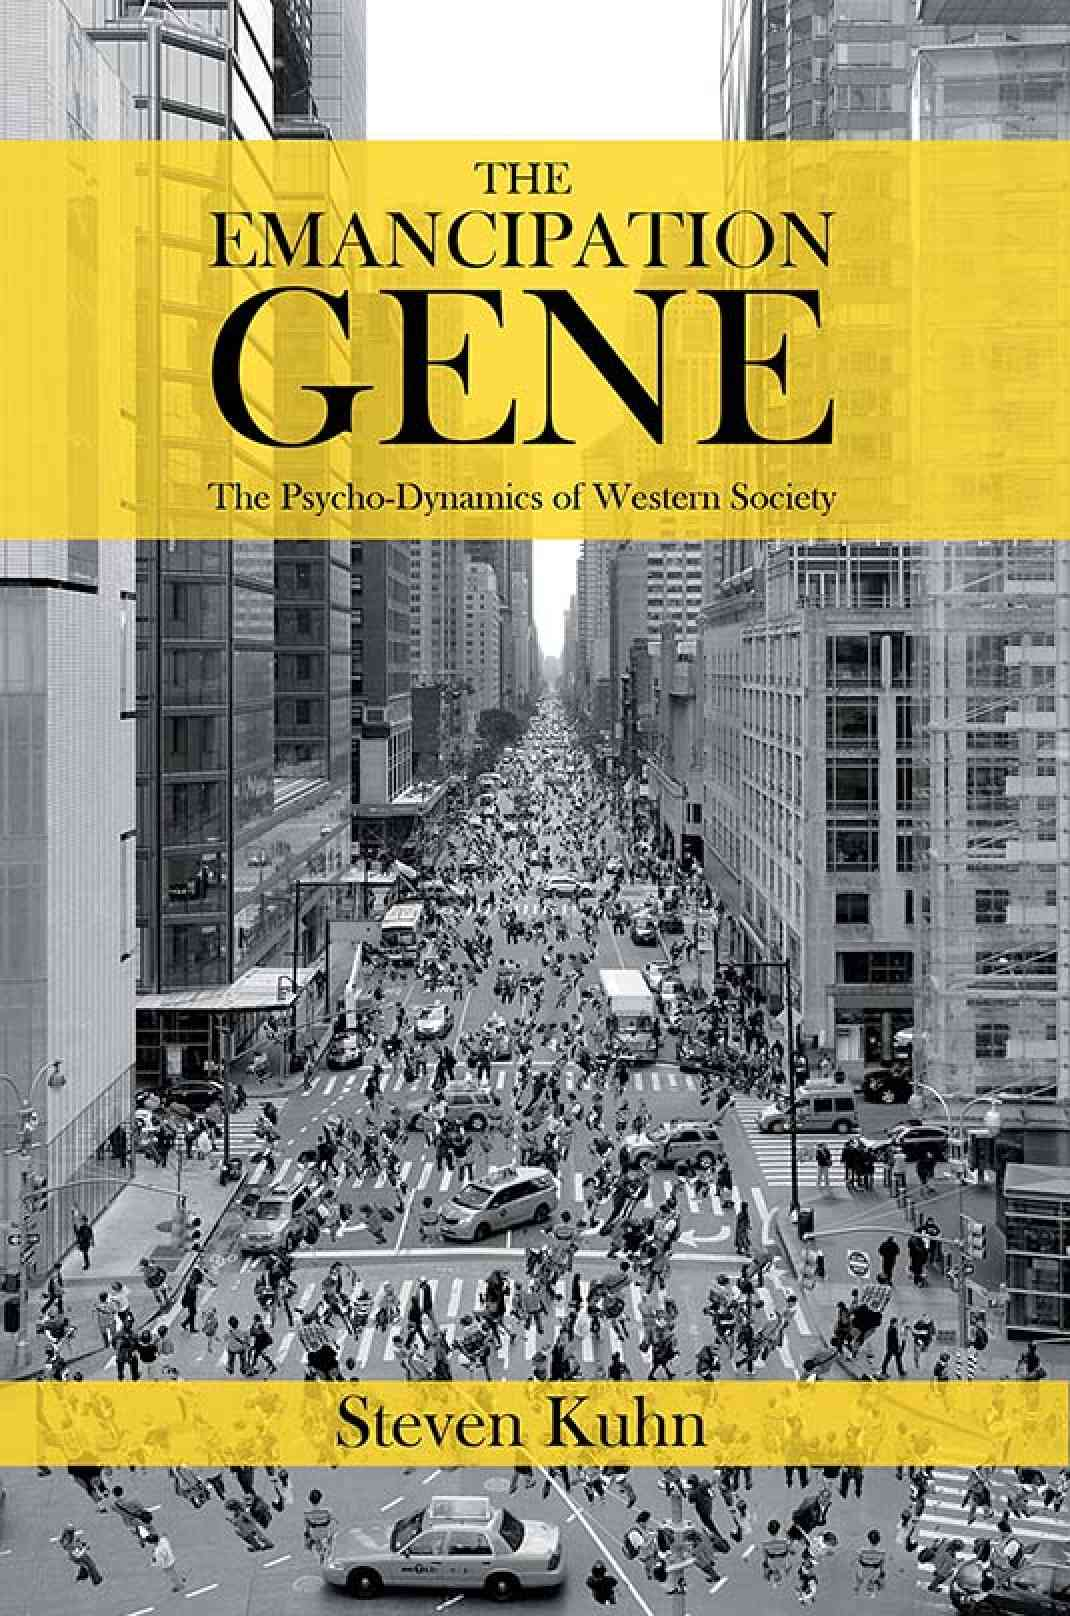 The Emancipation Gene - The Psycho-Dynamics of Western